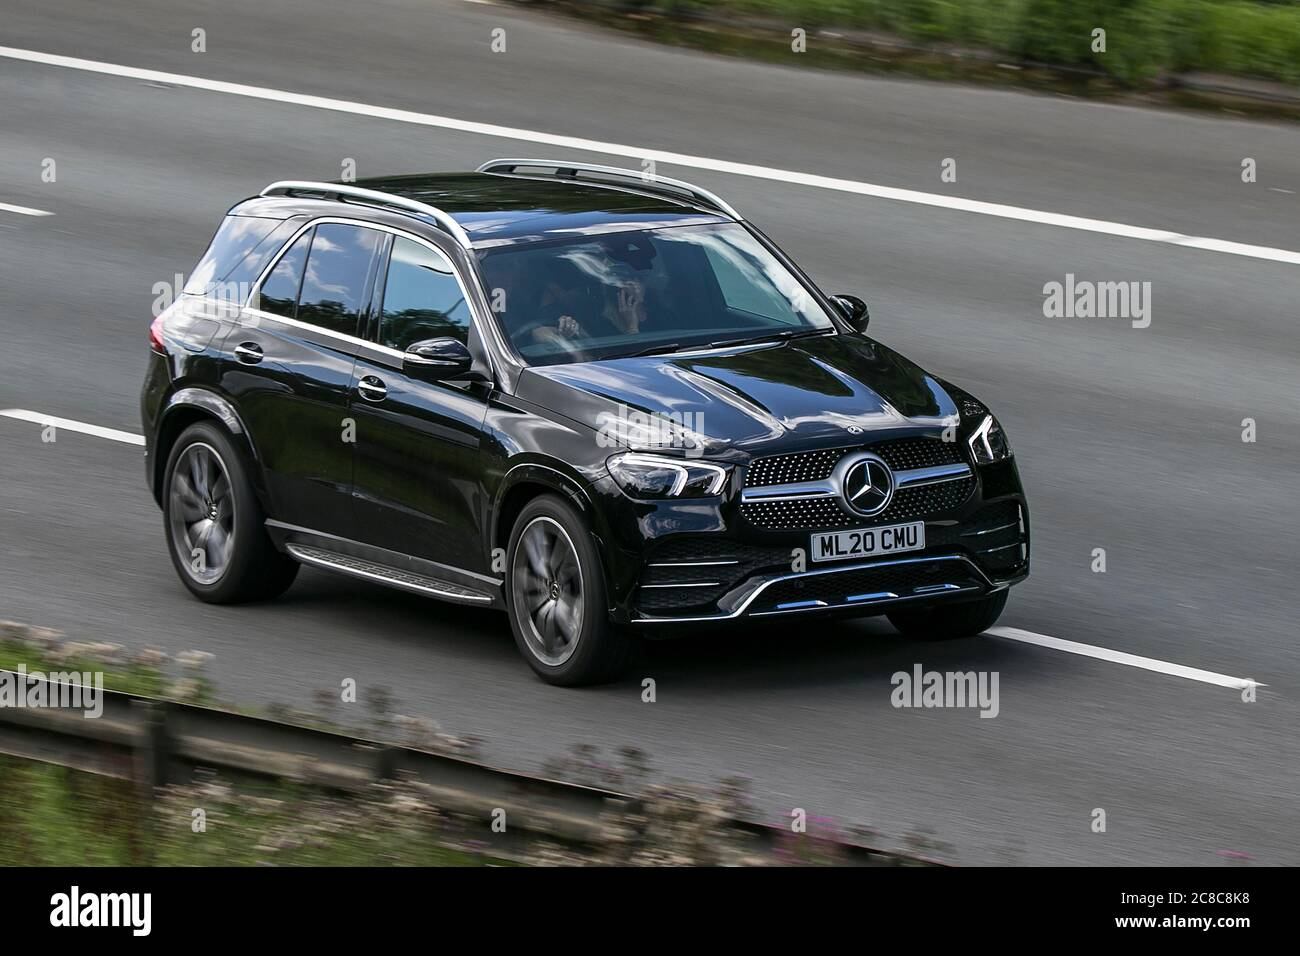 Mercedes Benz Gle High Resolution Stock Photography And Images Alamy